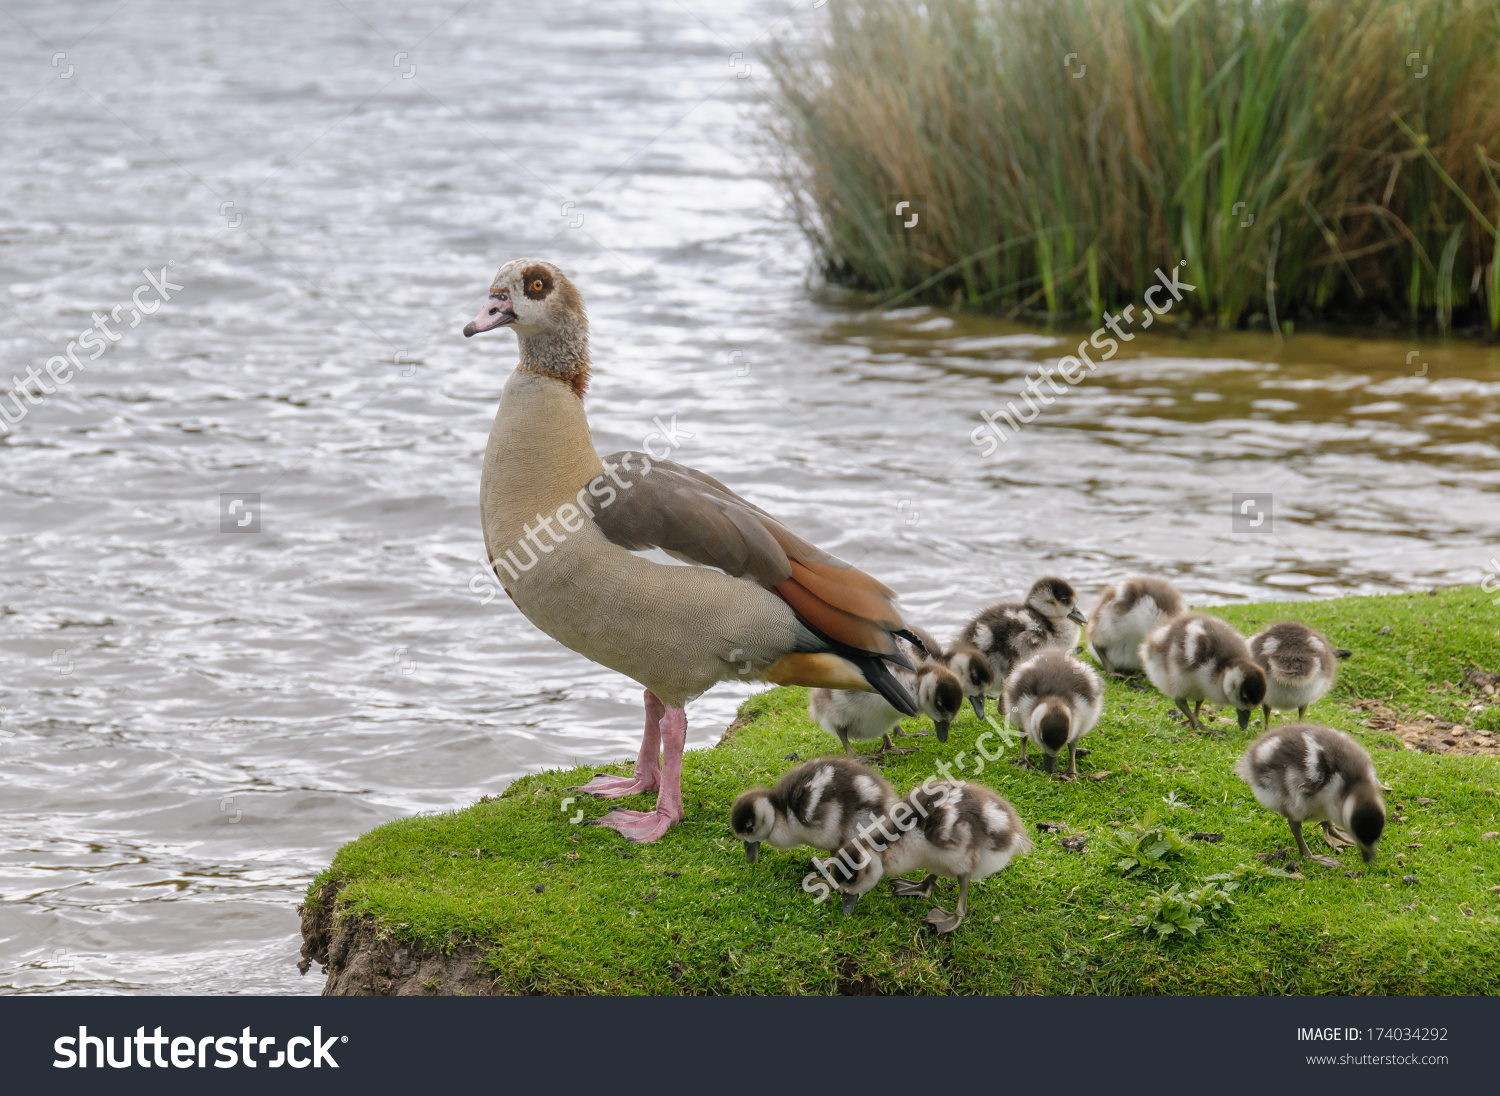 Egyptian Goose Baby Gooses Richmond Park Stock Photo 174034292.